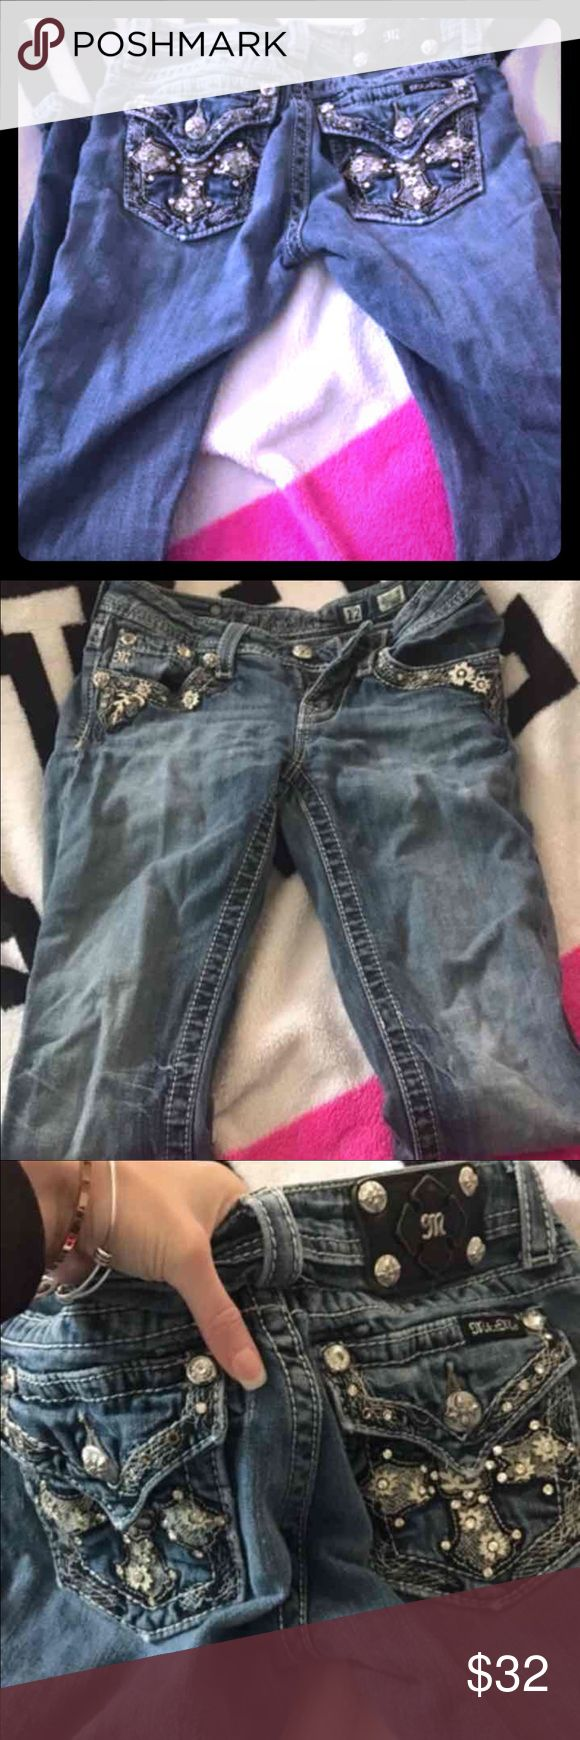 Girls Miss Me Jeans Girls size 12 Miss Me jeans. I'm anywhere from a 00 to a 1 and these fit fine. I bought these under the impression they were new, however I have pictures two hole that have started. Could more than likely be sewed but I don't have time :( I wore them once. May be missing some jewels too but other than that I love them!            ••Bundle to save!•• Miss Me Jeans Straight Leg